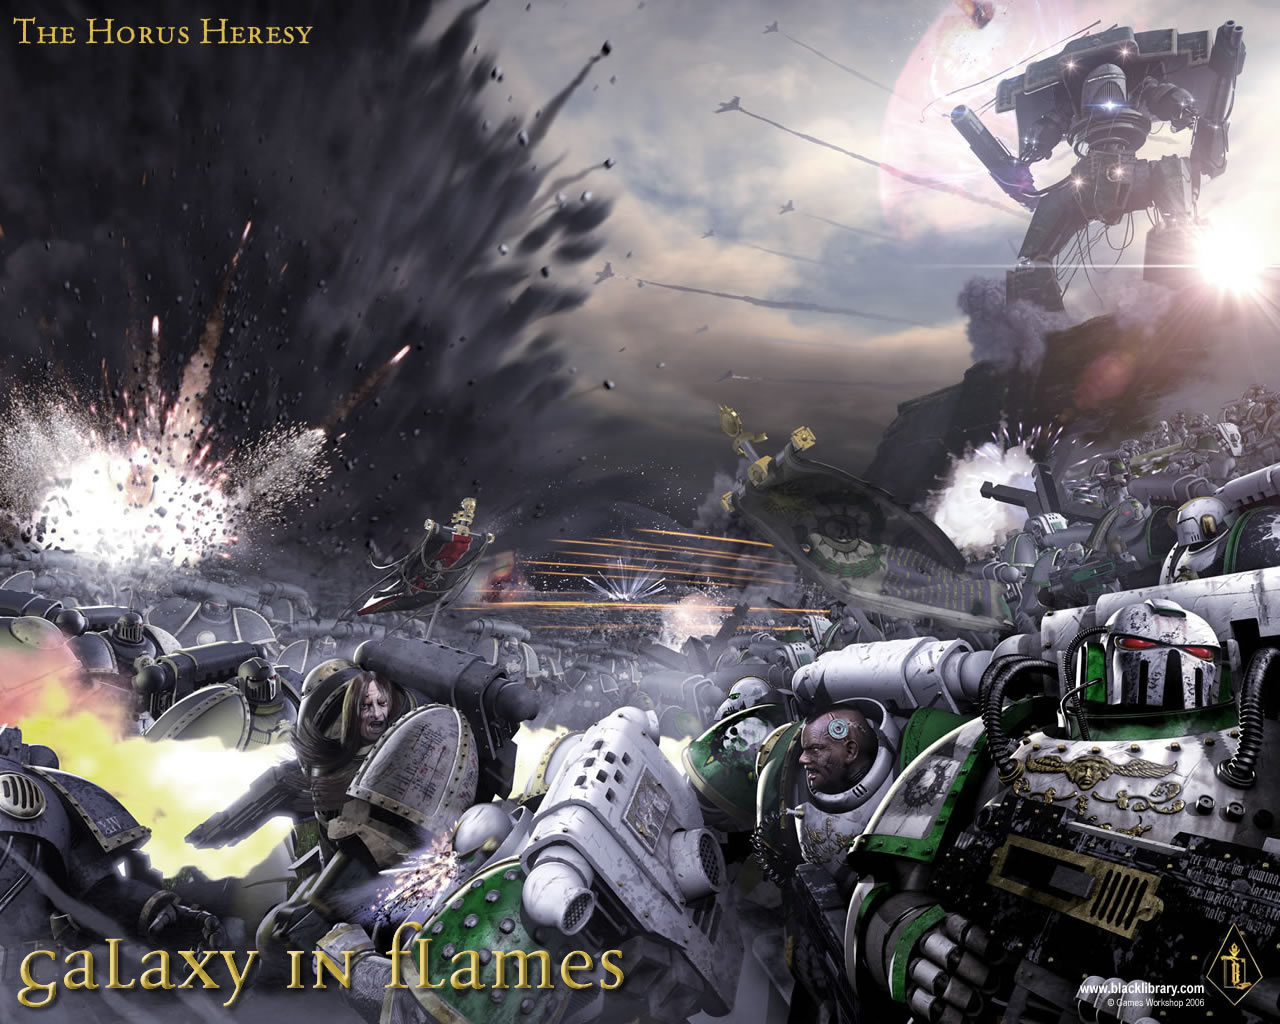 http://4.bp.blogspot.com/_wT60SRvz9rI/TJ4eP80jeNI/AAAAAAAAAAw/2p8Ib8iWXII/s1600/warhammer-40k-the-horus-heresy-galaxy-in-flames-wallpaper.jpg